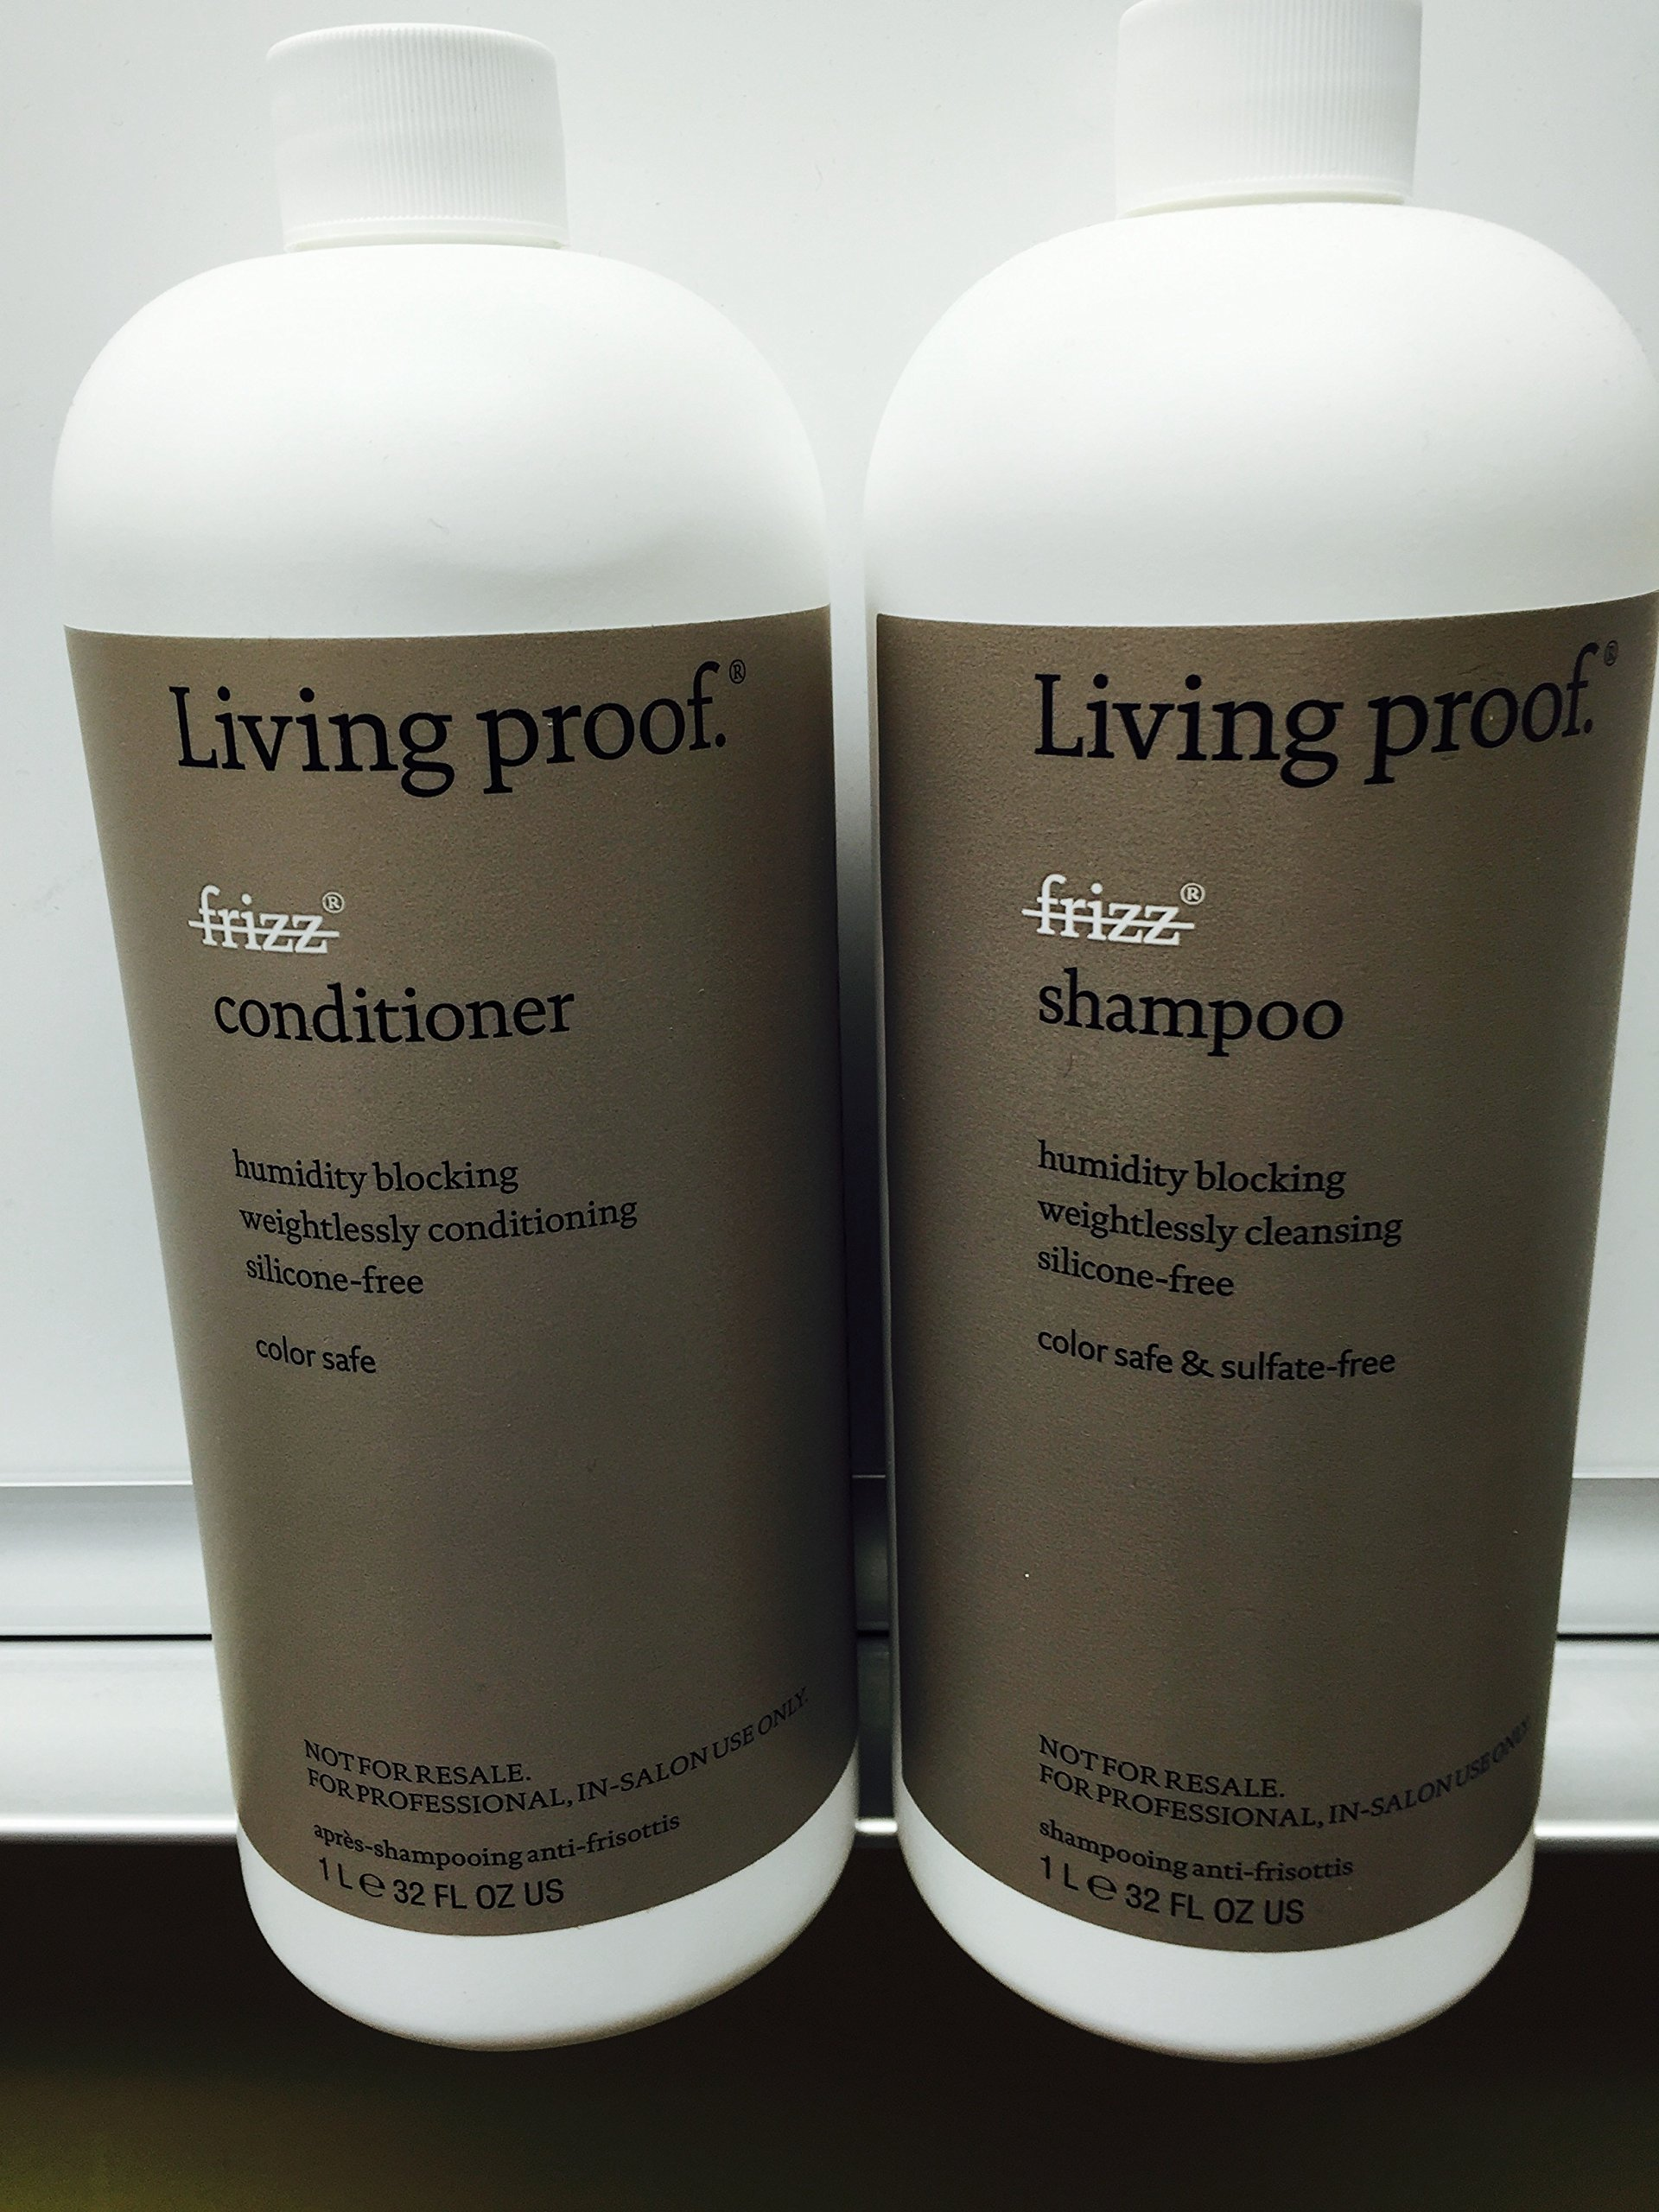 Living Proof Professional Frizz Shampoo 32oz and Frizz Conditioner 32oz Duo